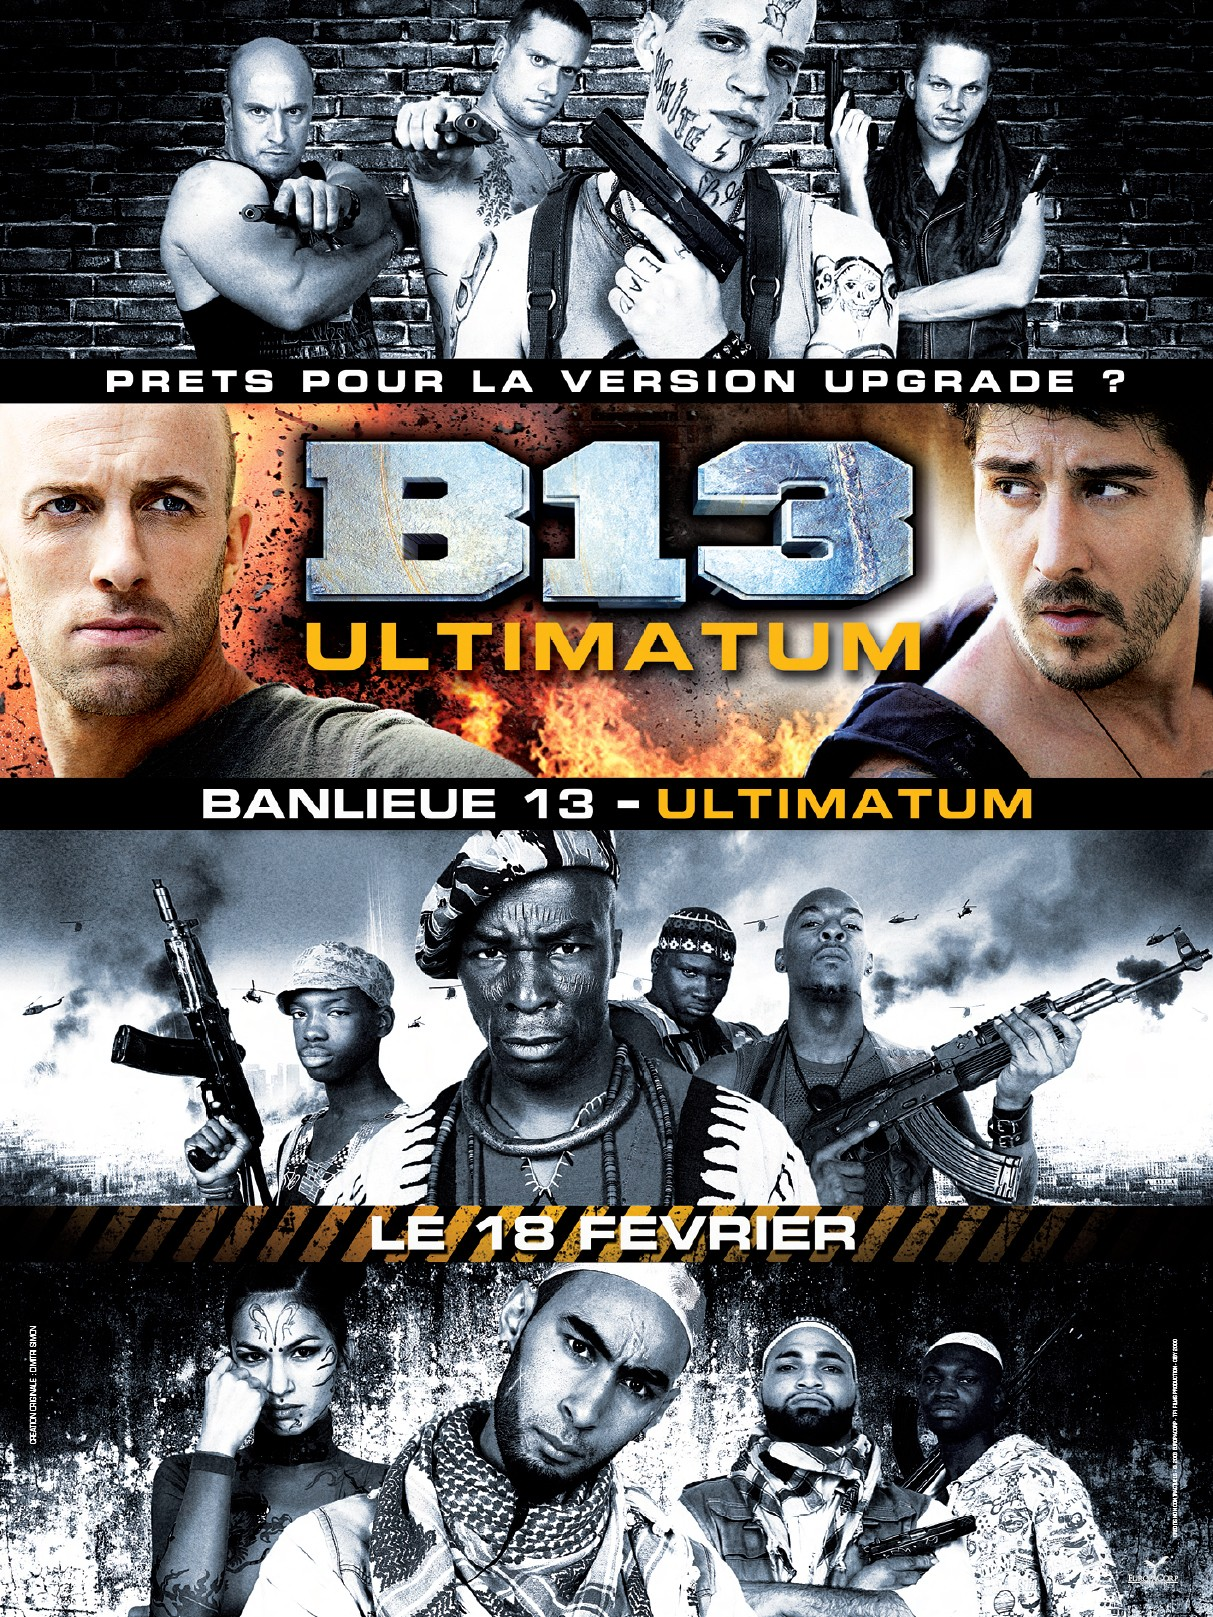 le film b13 ultimatum